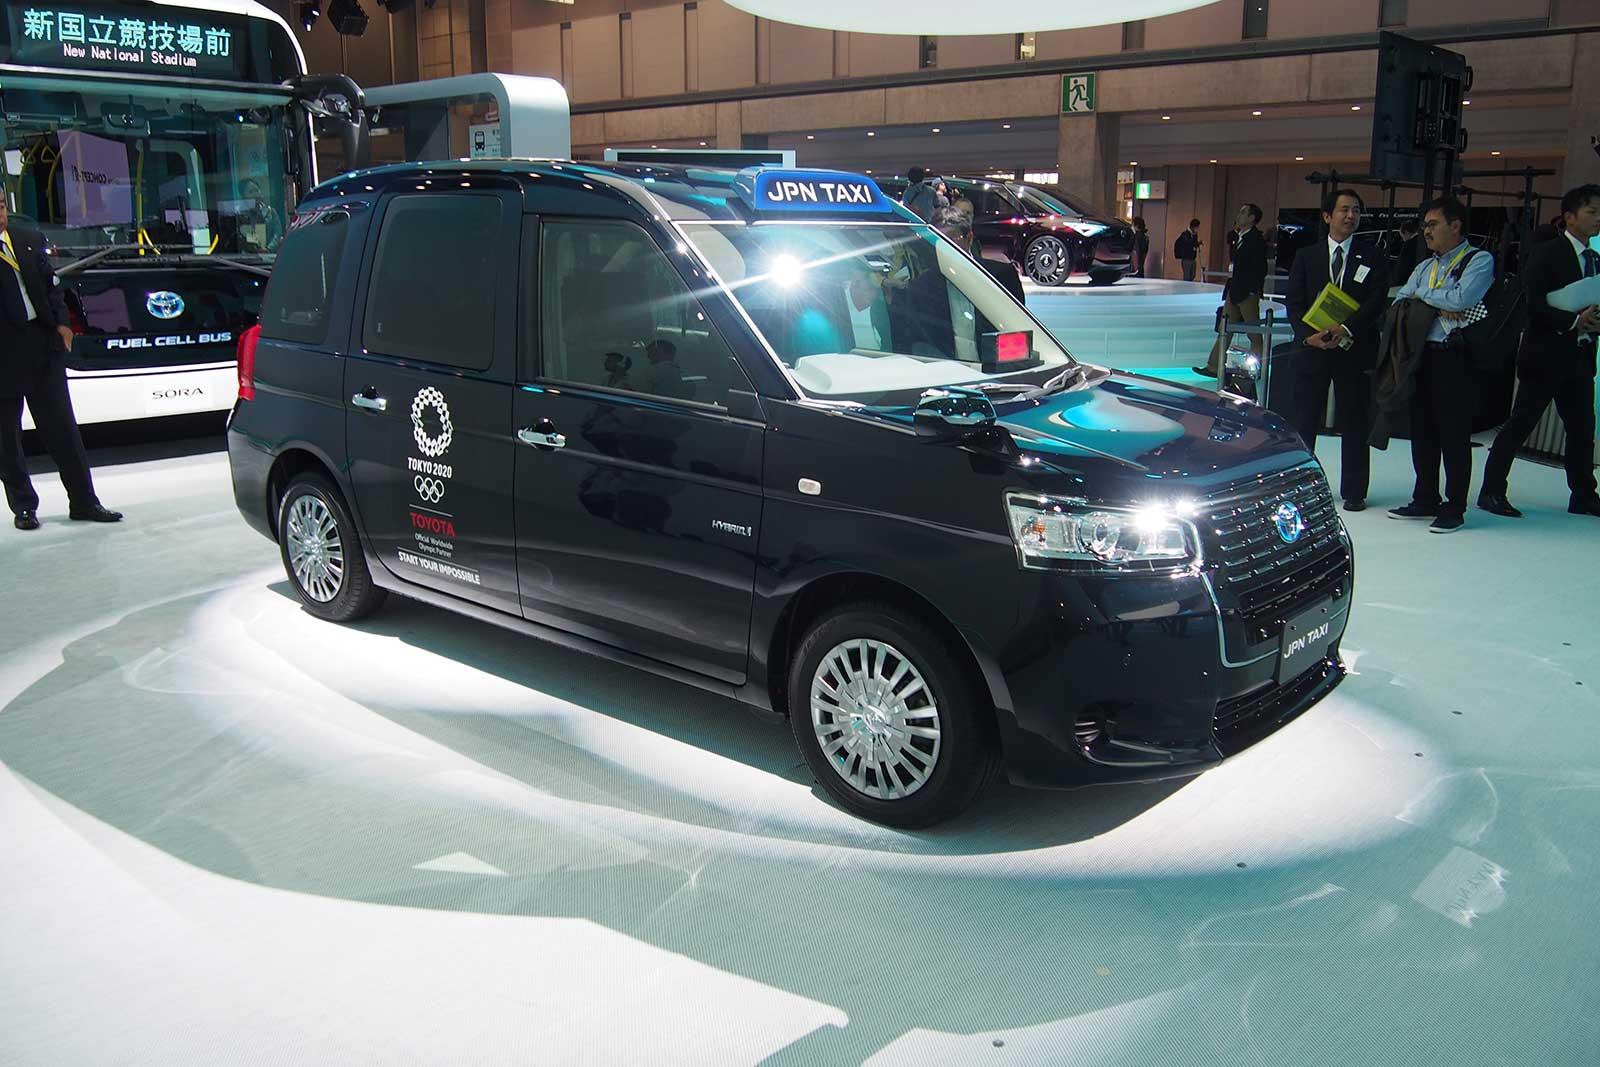 New Toyota Jpn Taxi Is Coming To The Streets Of Tokyo